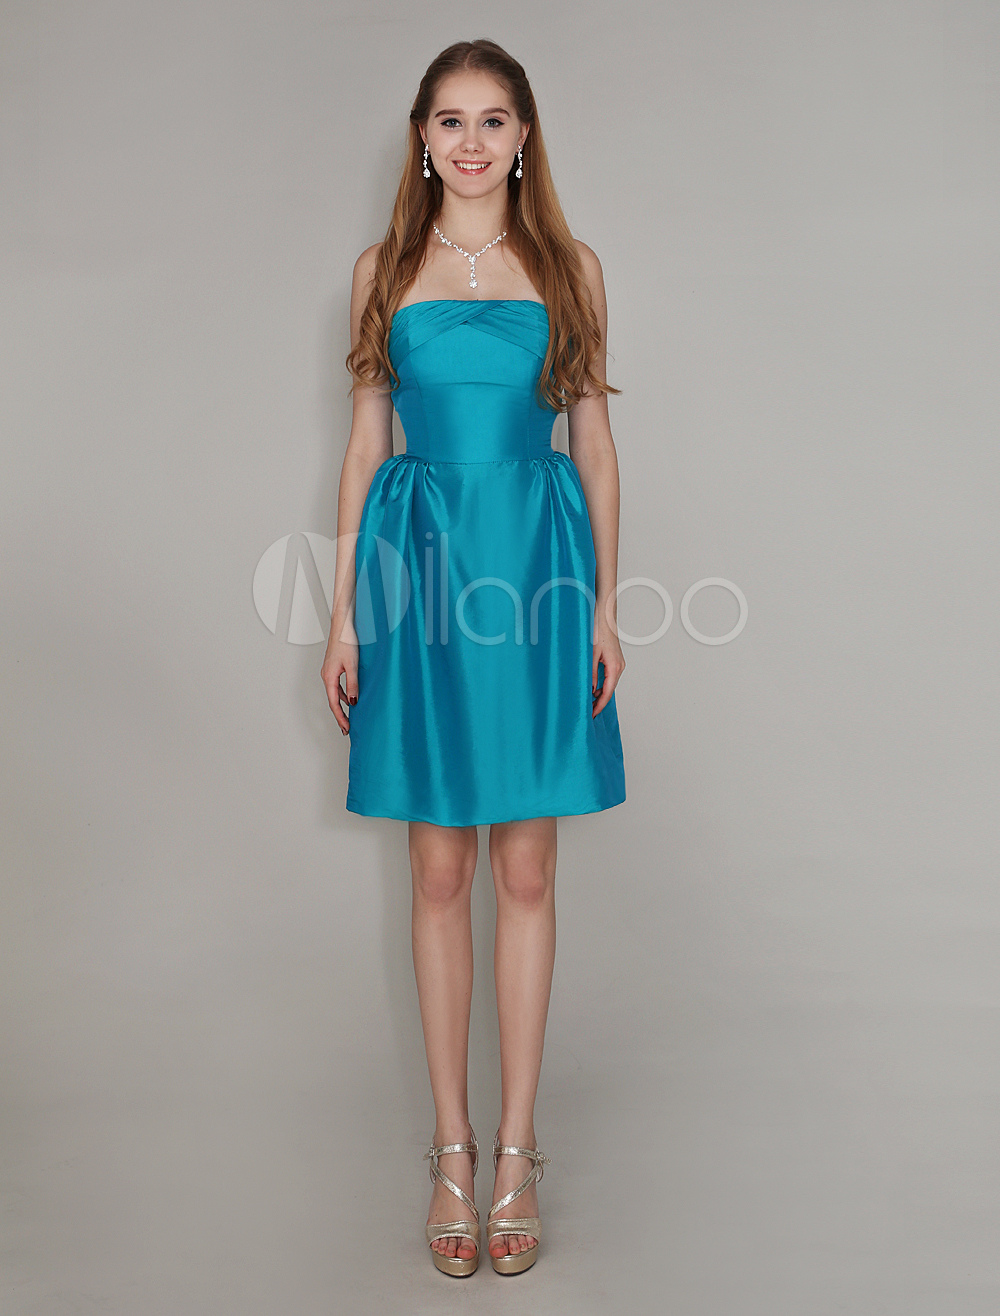 Buy Teal Strapless Bridesmaid Dress Taffeta A Line Cocktail Dress Knee Length Pleated Short Wedding Party Dress Wedding Guest Dress for $79.99 in Milanoo store